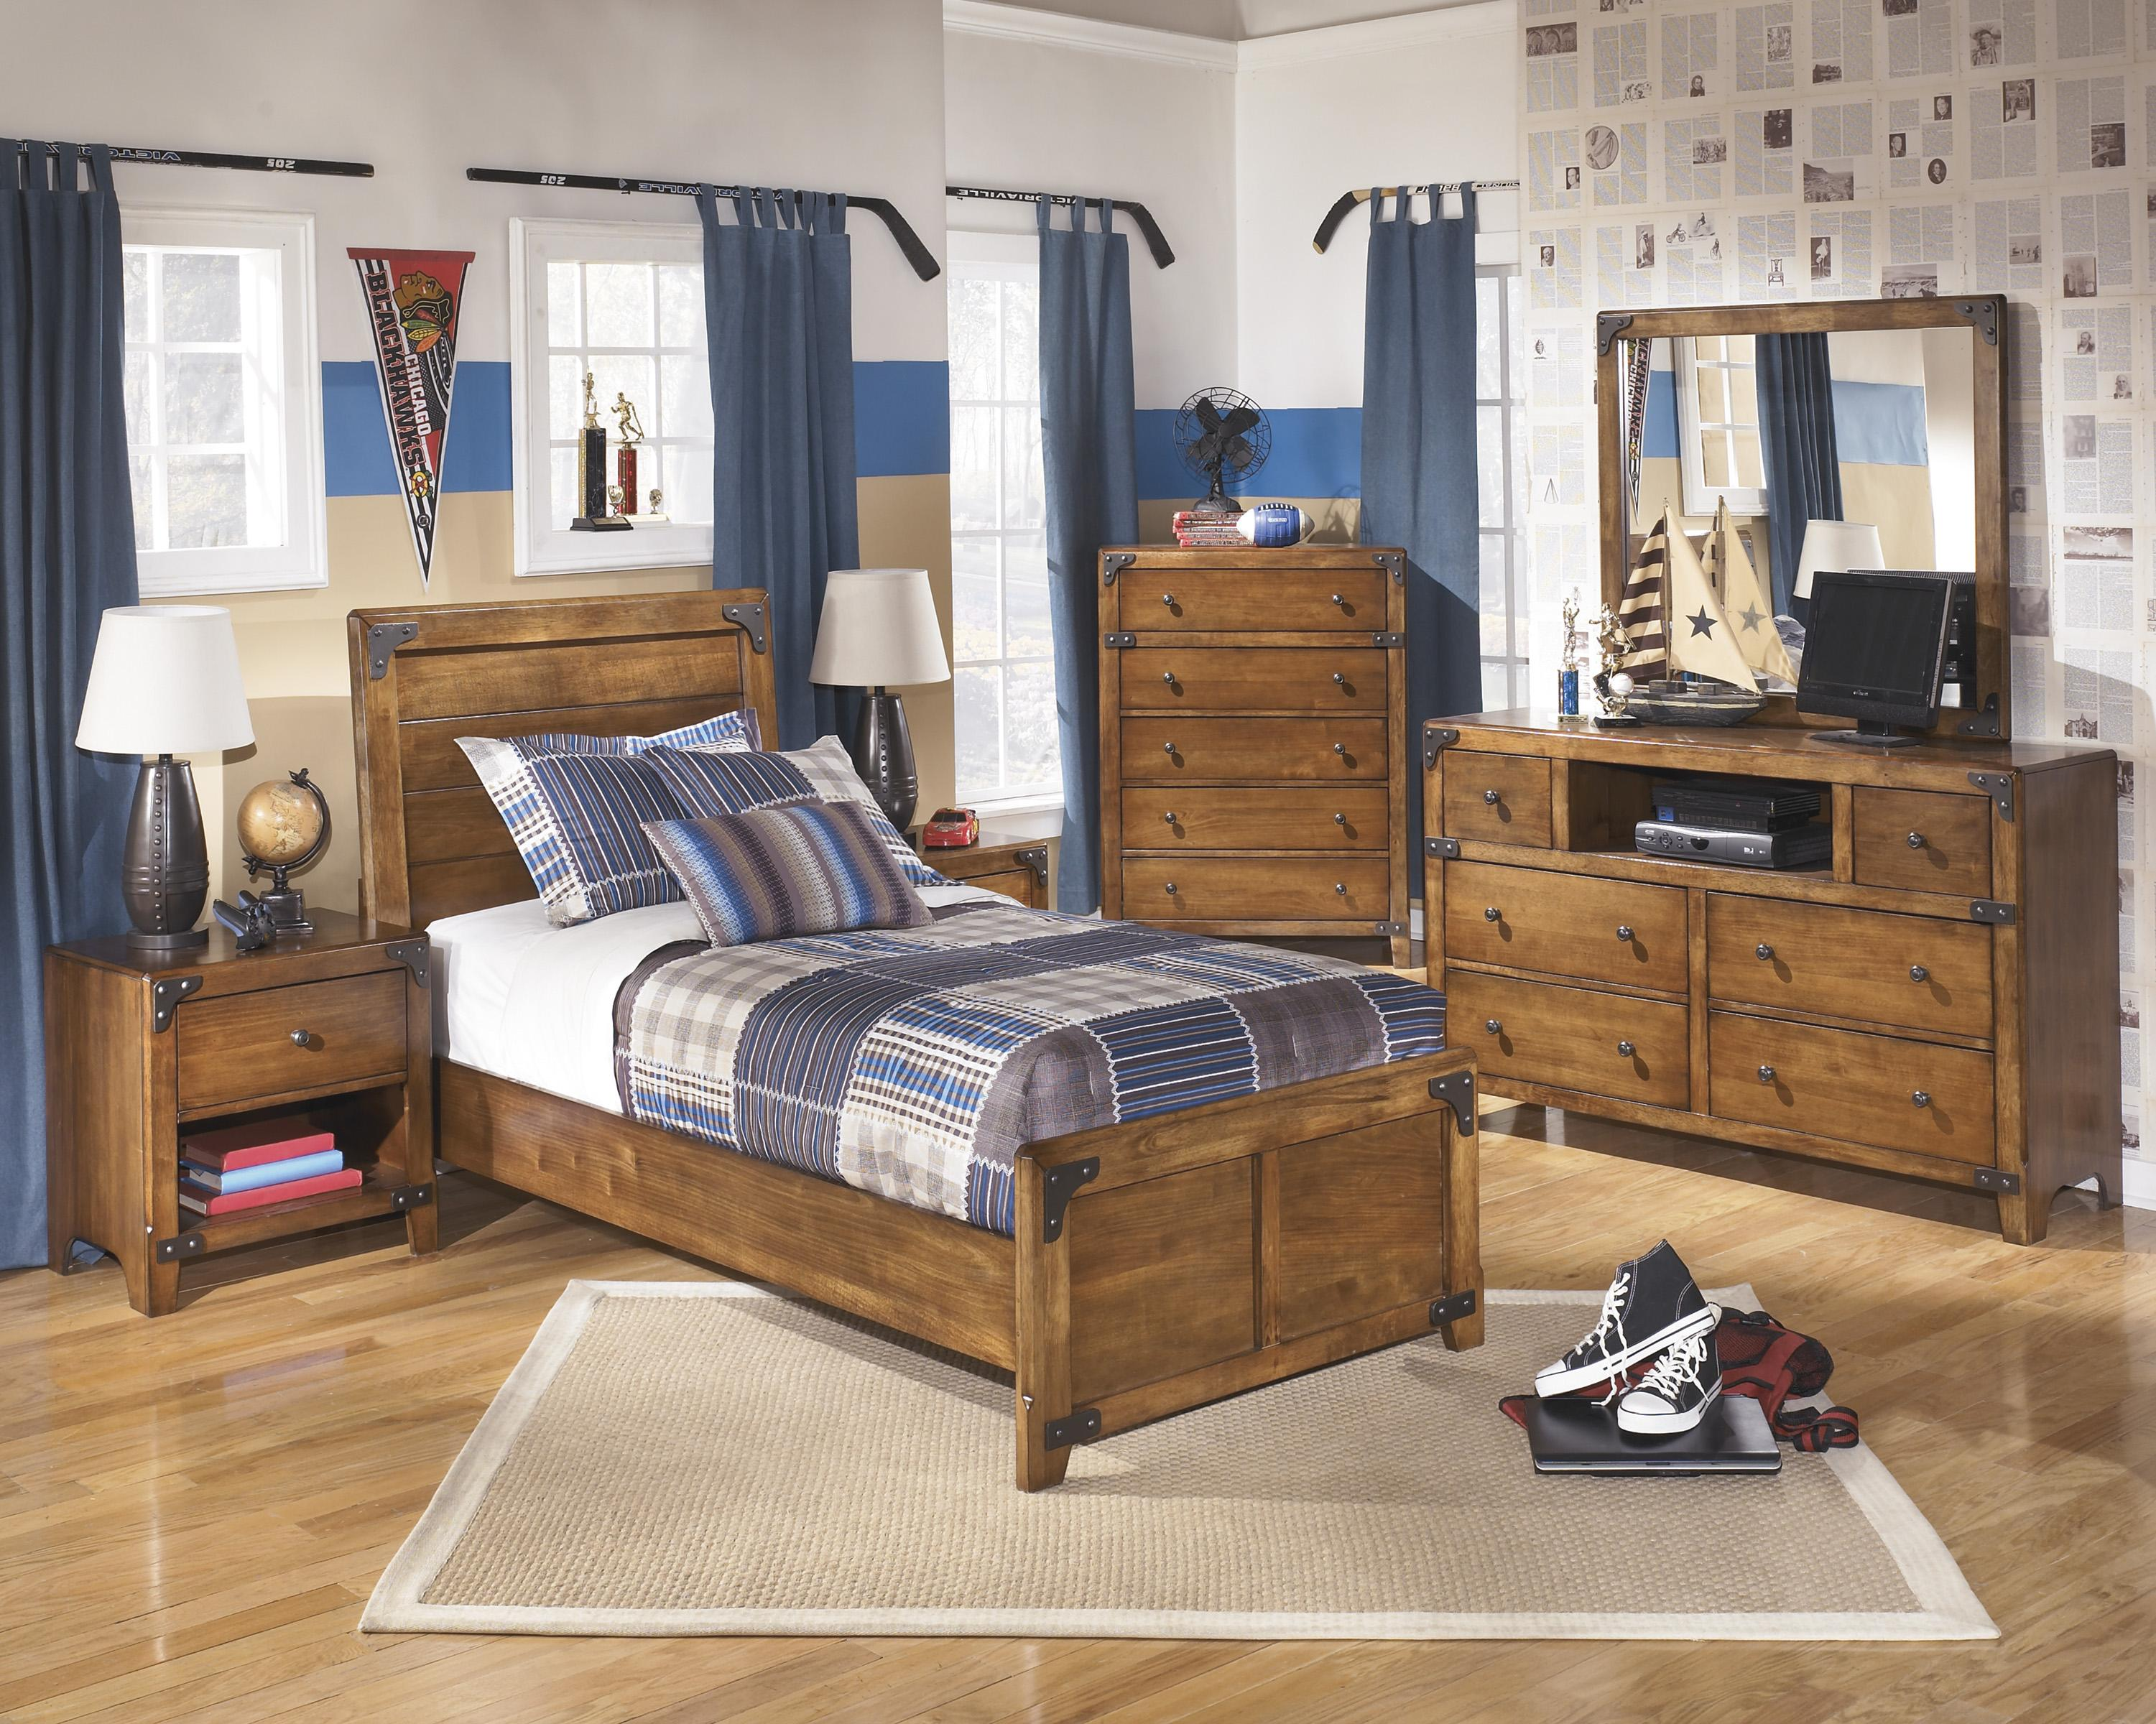 Signature Design by Ashley Delburne Twin Bedroom Group - Item Number: B362 T Bedroom Group 2